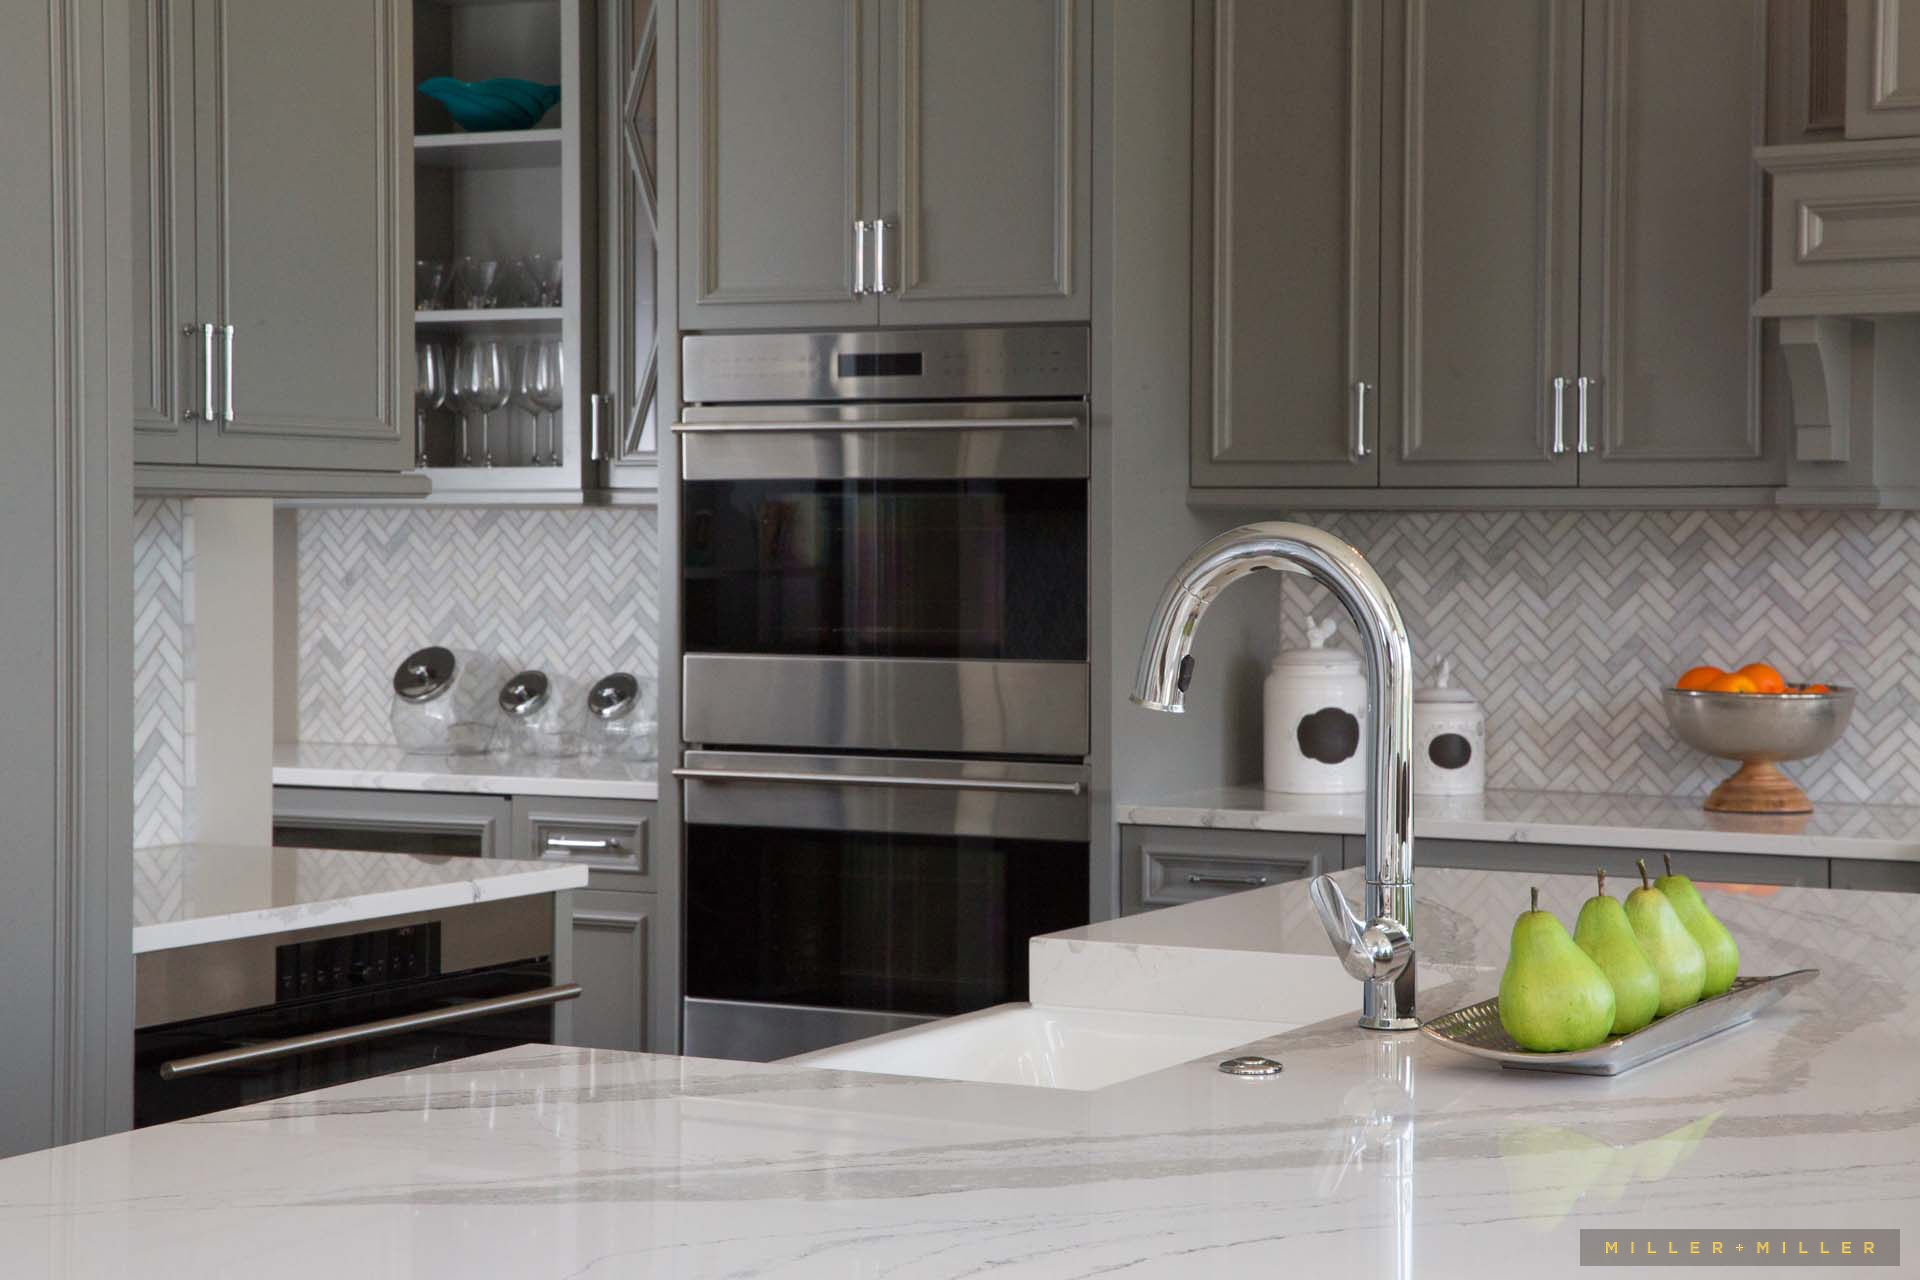 kitchen quartz white countertops